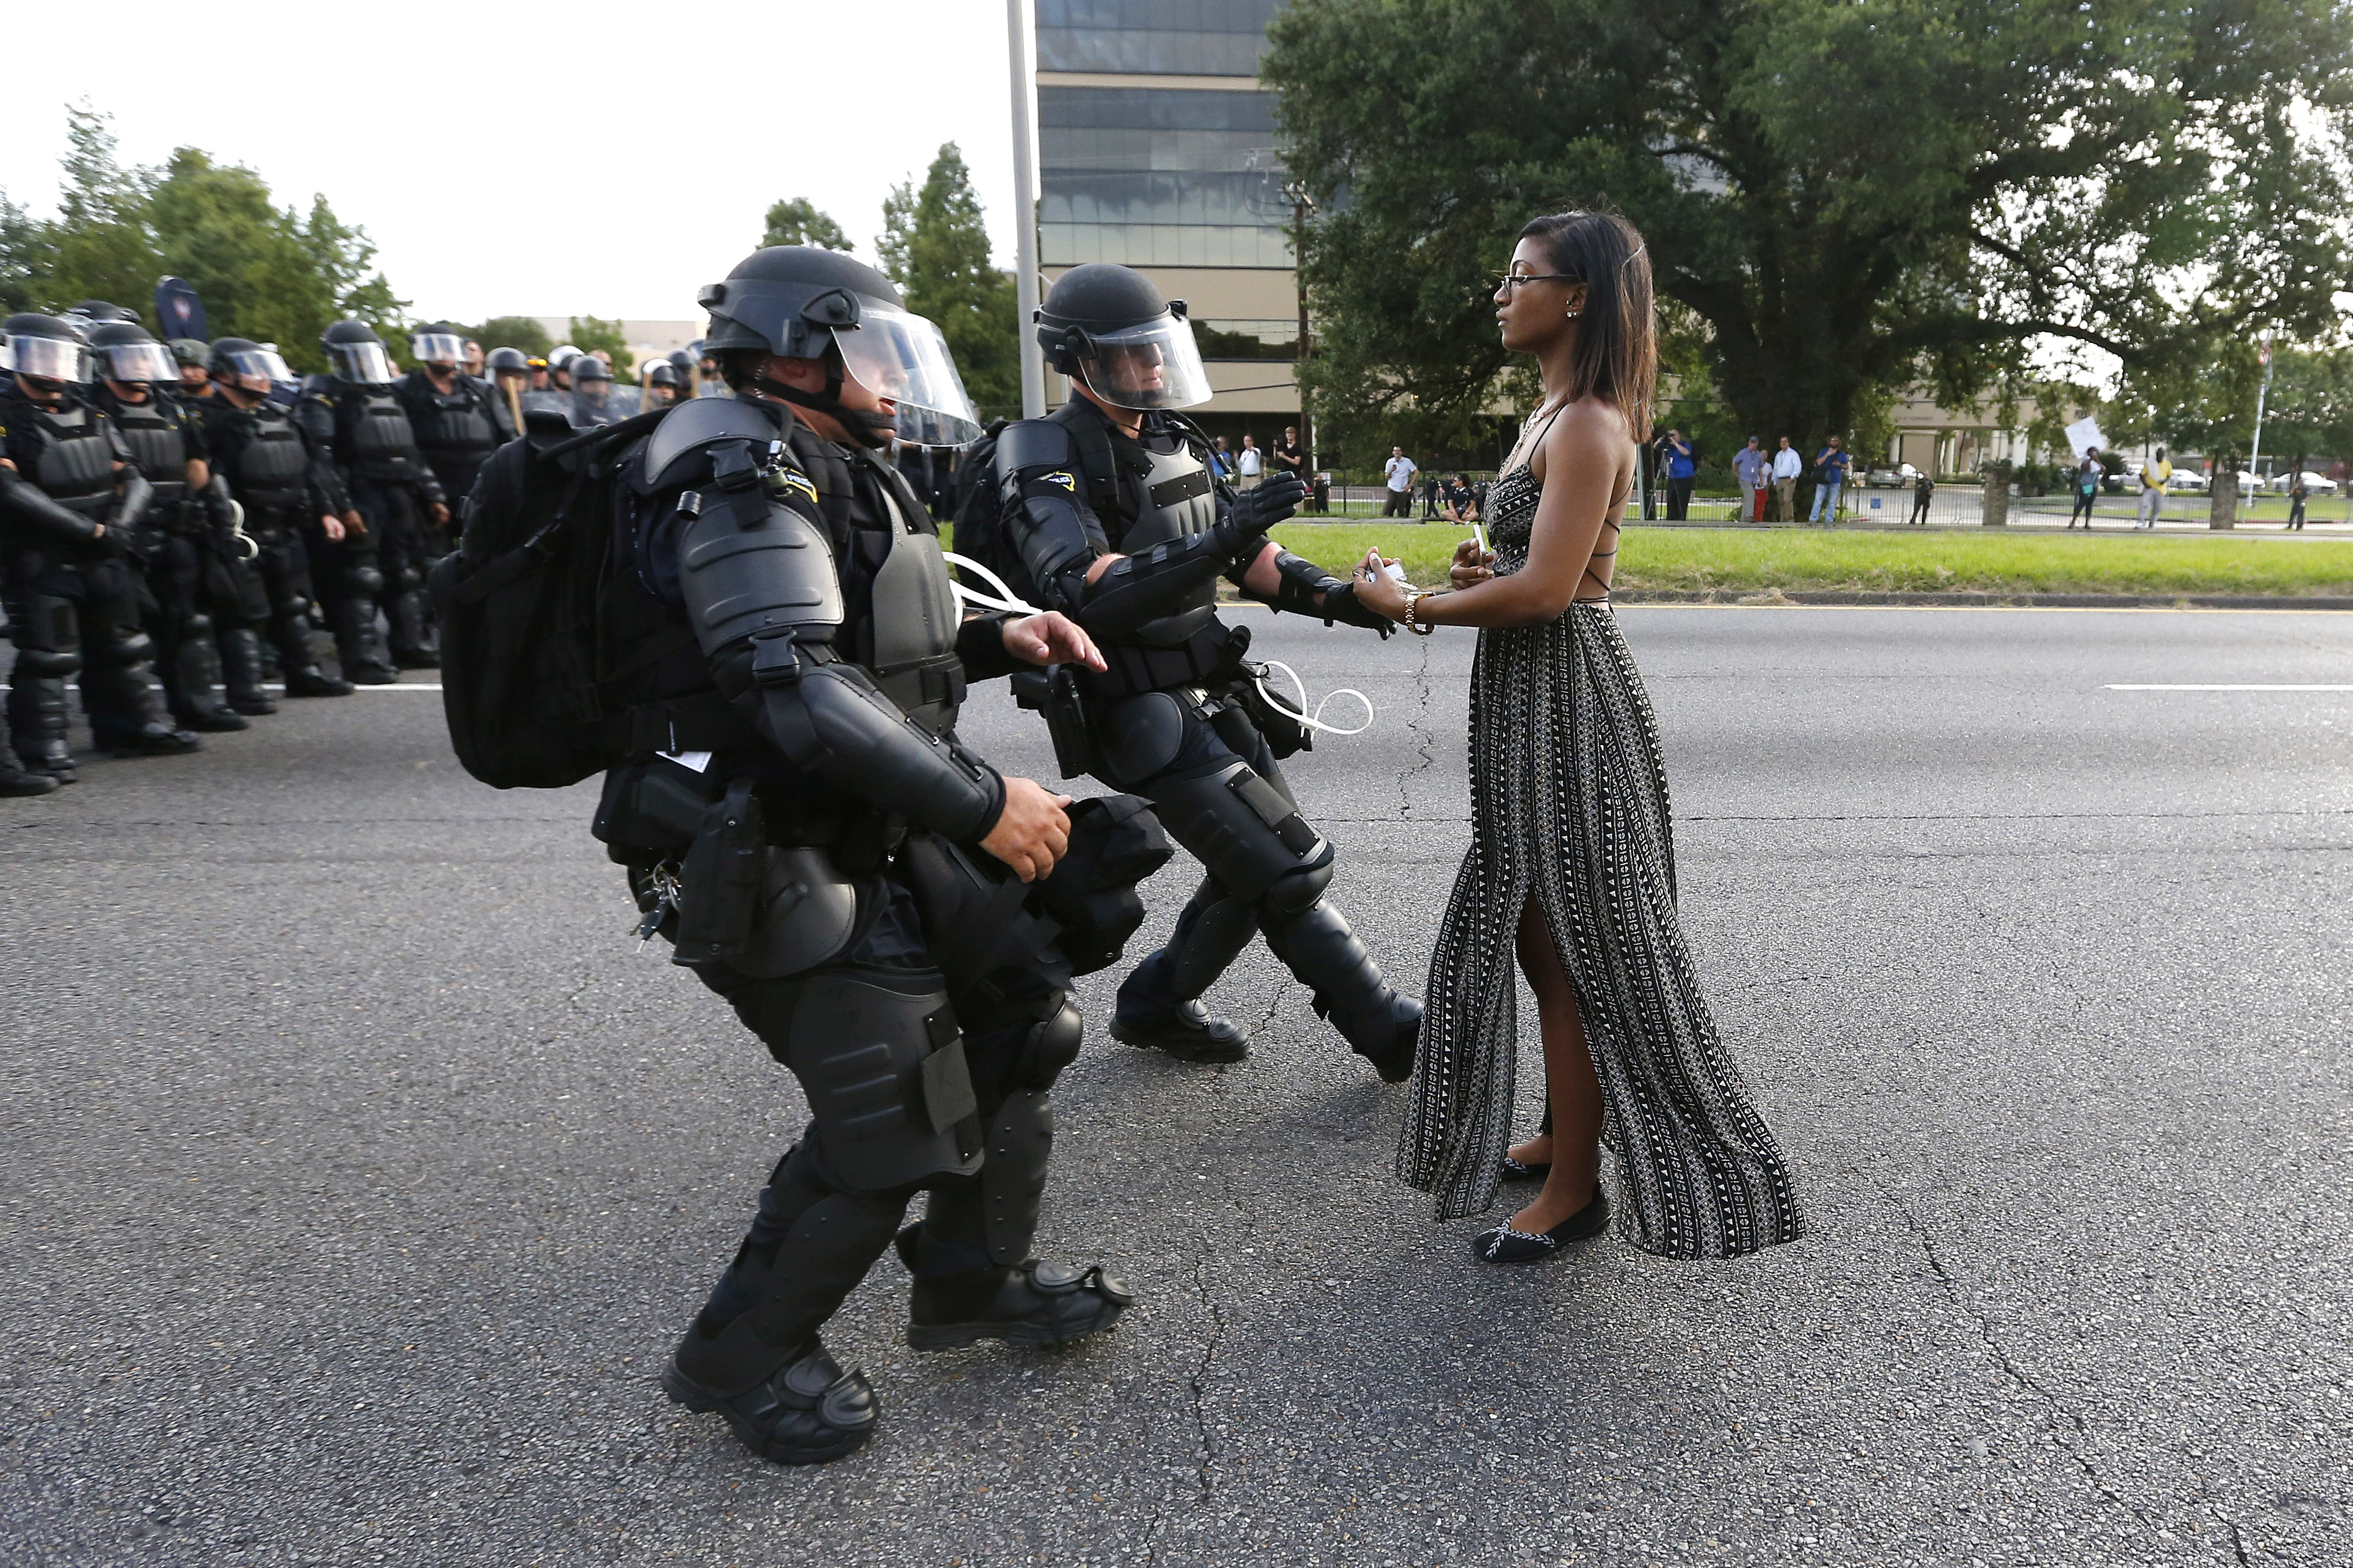 A demonstrator protesting the shooting death of Alton Sterling is detained by law enforcement near the headquarters of the Baton Rouge Police Department in Baton Rouge, Louisiana, U.S. July 9, 2016.  REUTERS/Jonathan Bachman     TPX IMAGES OF THE DAY      - RTSH3XR